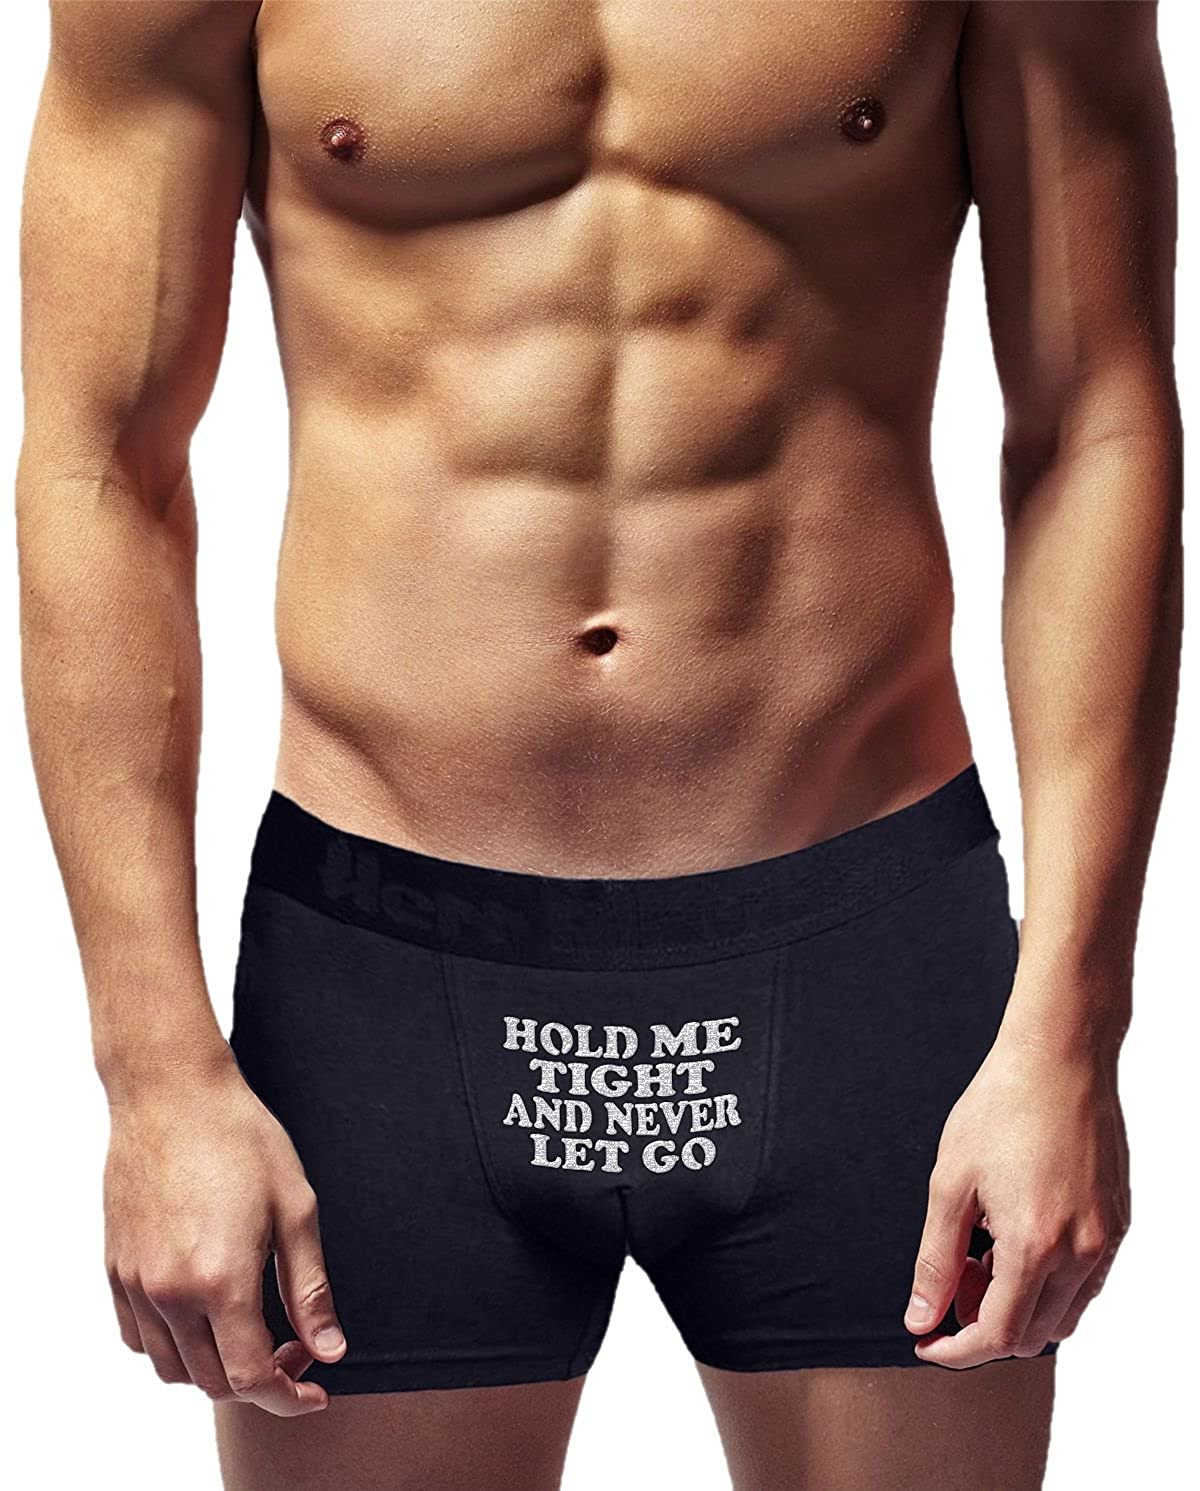 Novelty Item. Innovative Gift | Cool Boxer Briefs Birthday Present Hold me Tight and Never let go